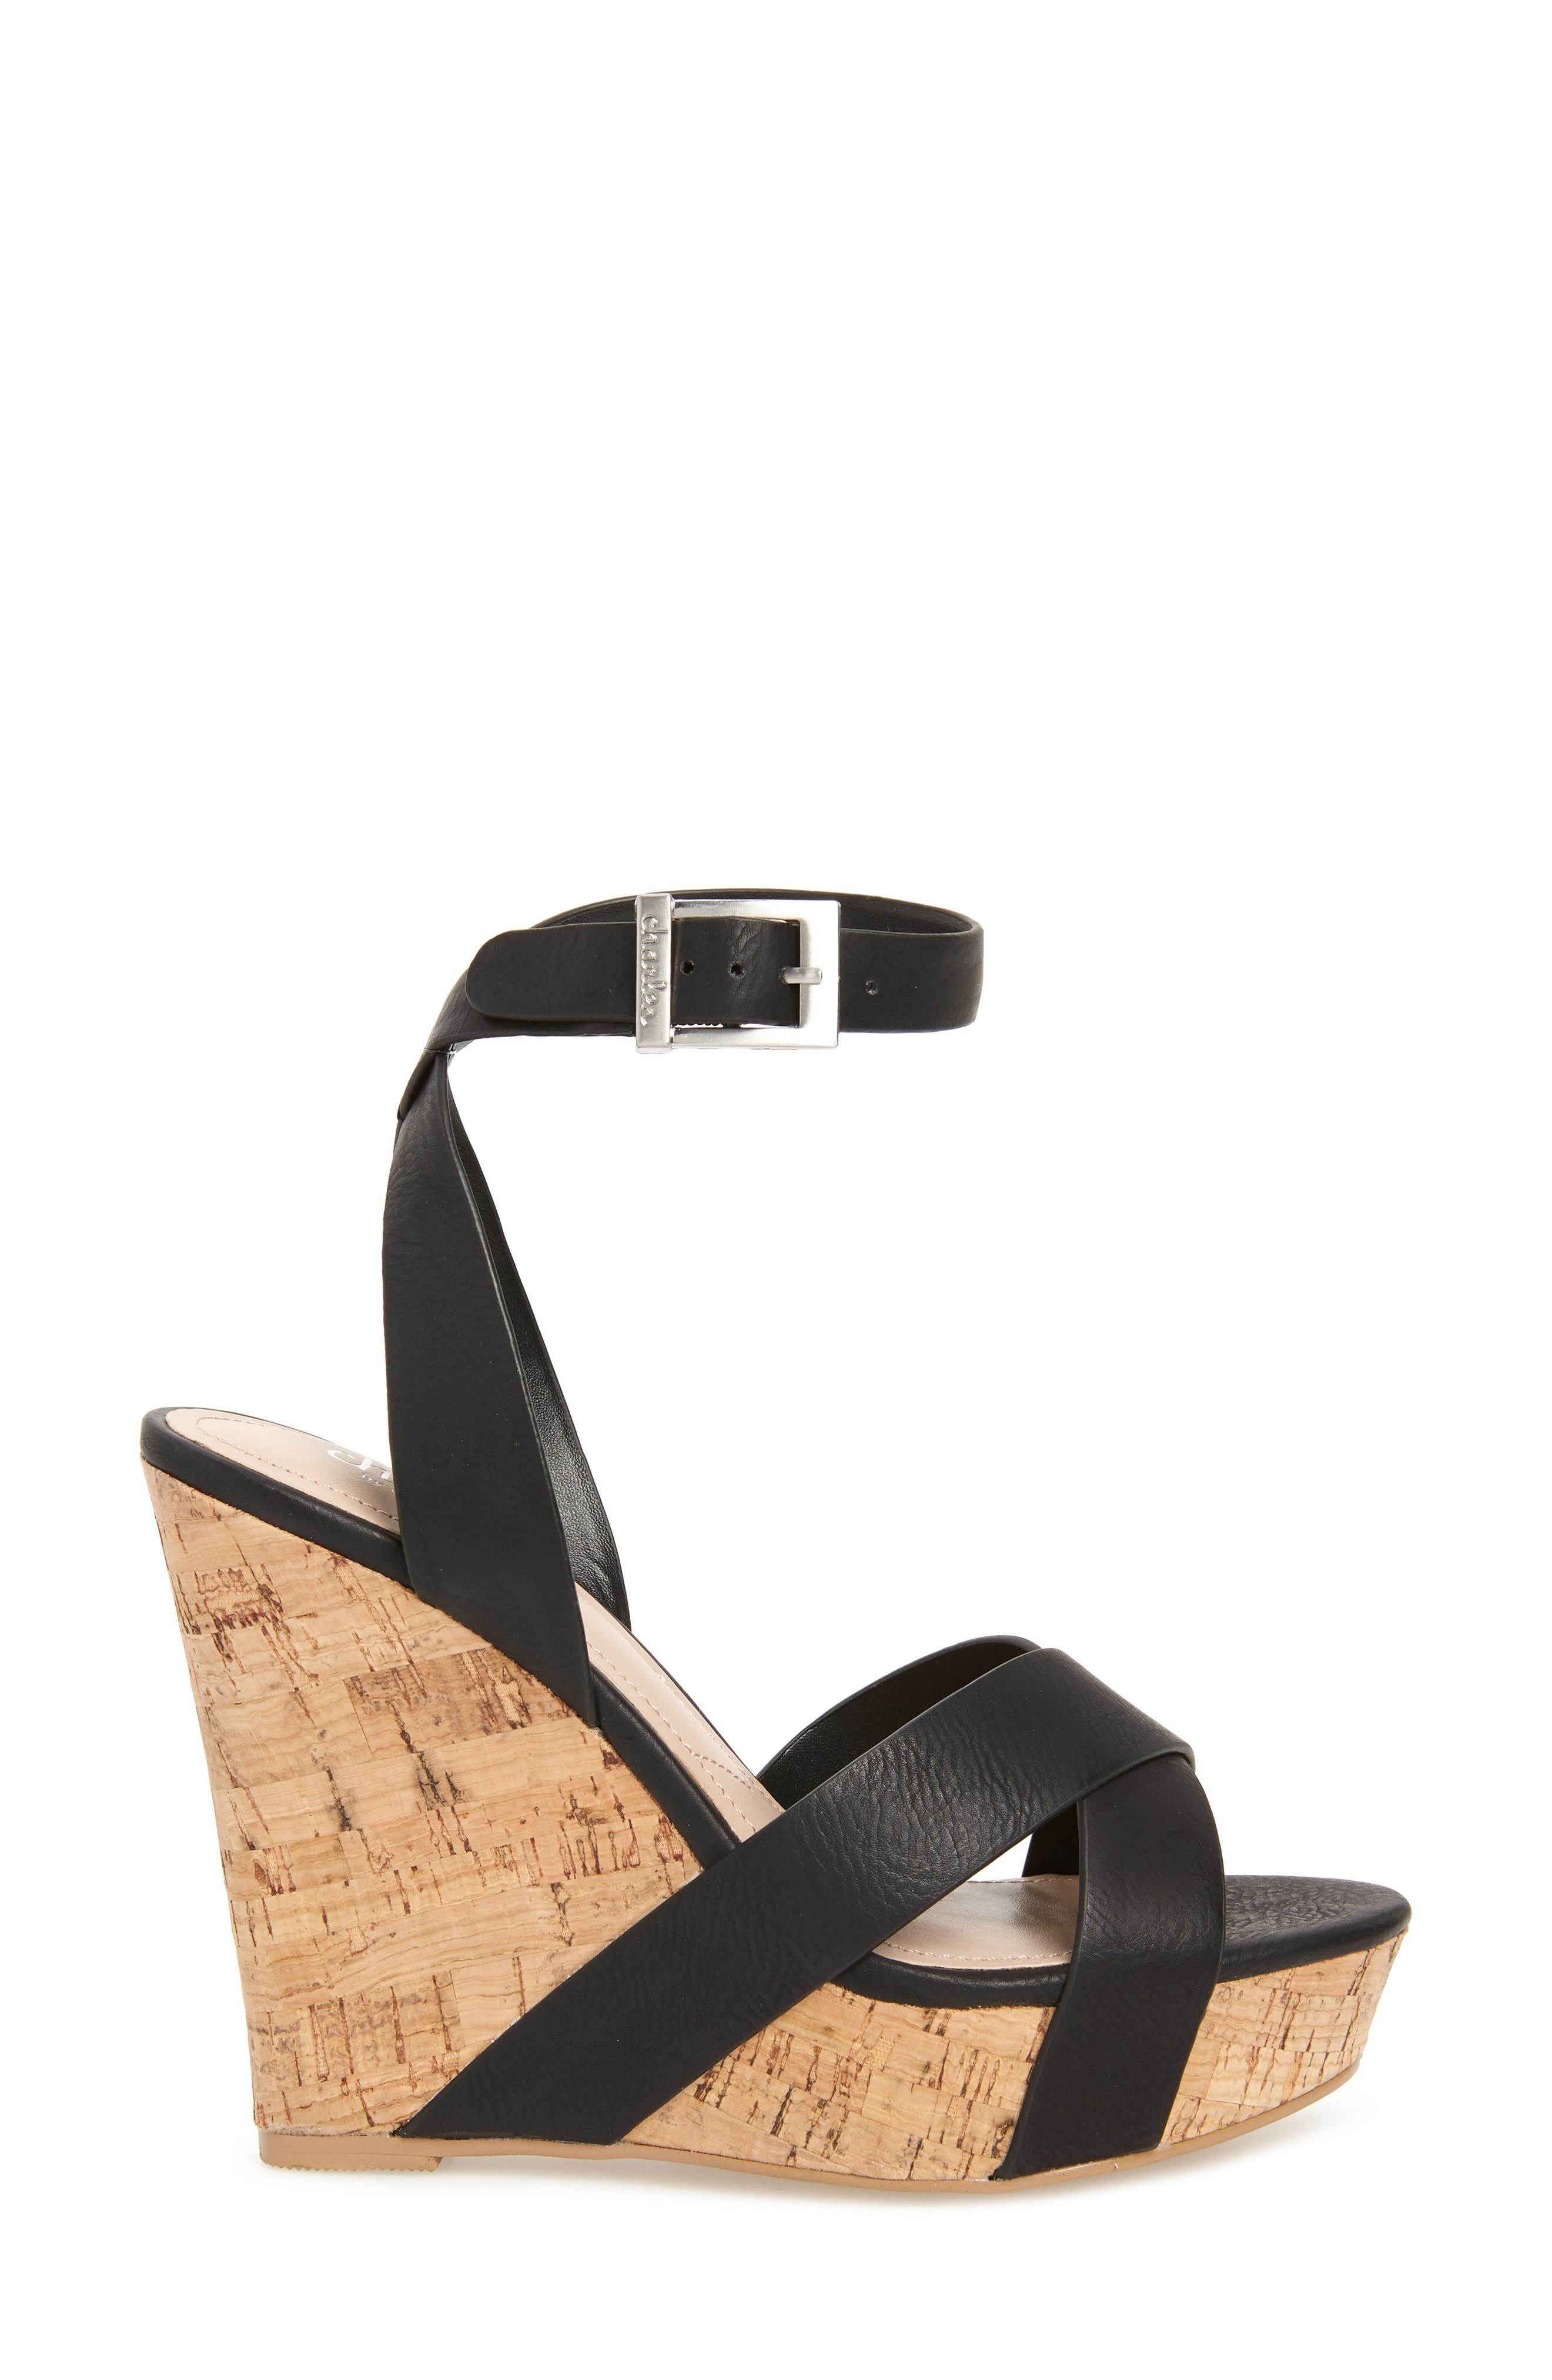 CHARLES BY CHARLES DAVID, Aleck Platform Wedge Sandal, Alternate thumbnail 3, color, BLACK FAUX LEATHER